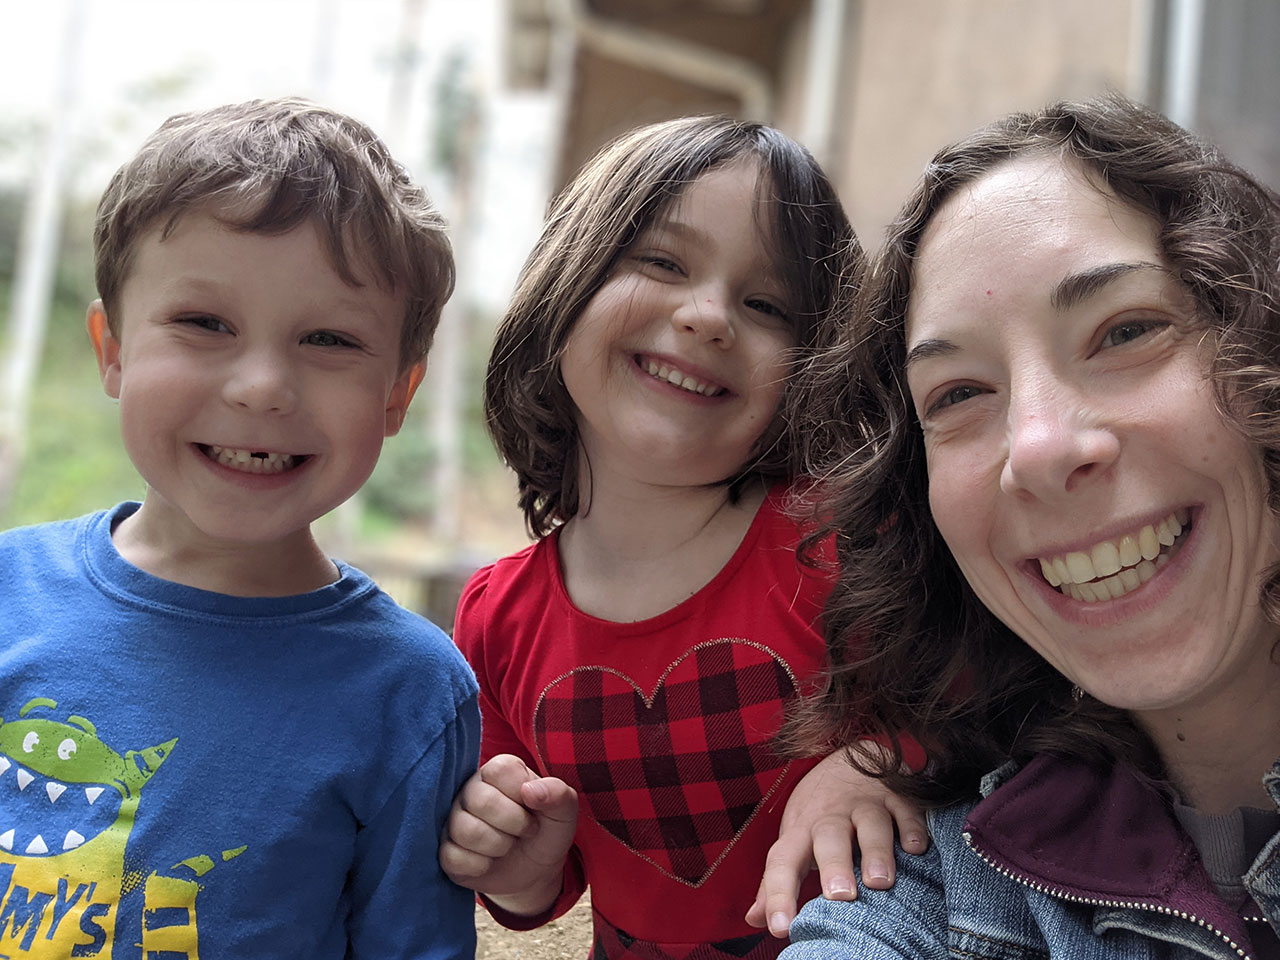 Jenette Woskow, with children Xavier and Elise, is the marketing and publicity chair of Kesher Oak Hadassah, a relatively new chapter of Hadassah, the venerable Zionist women's group.